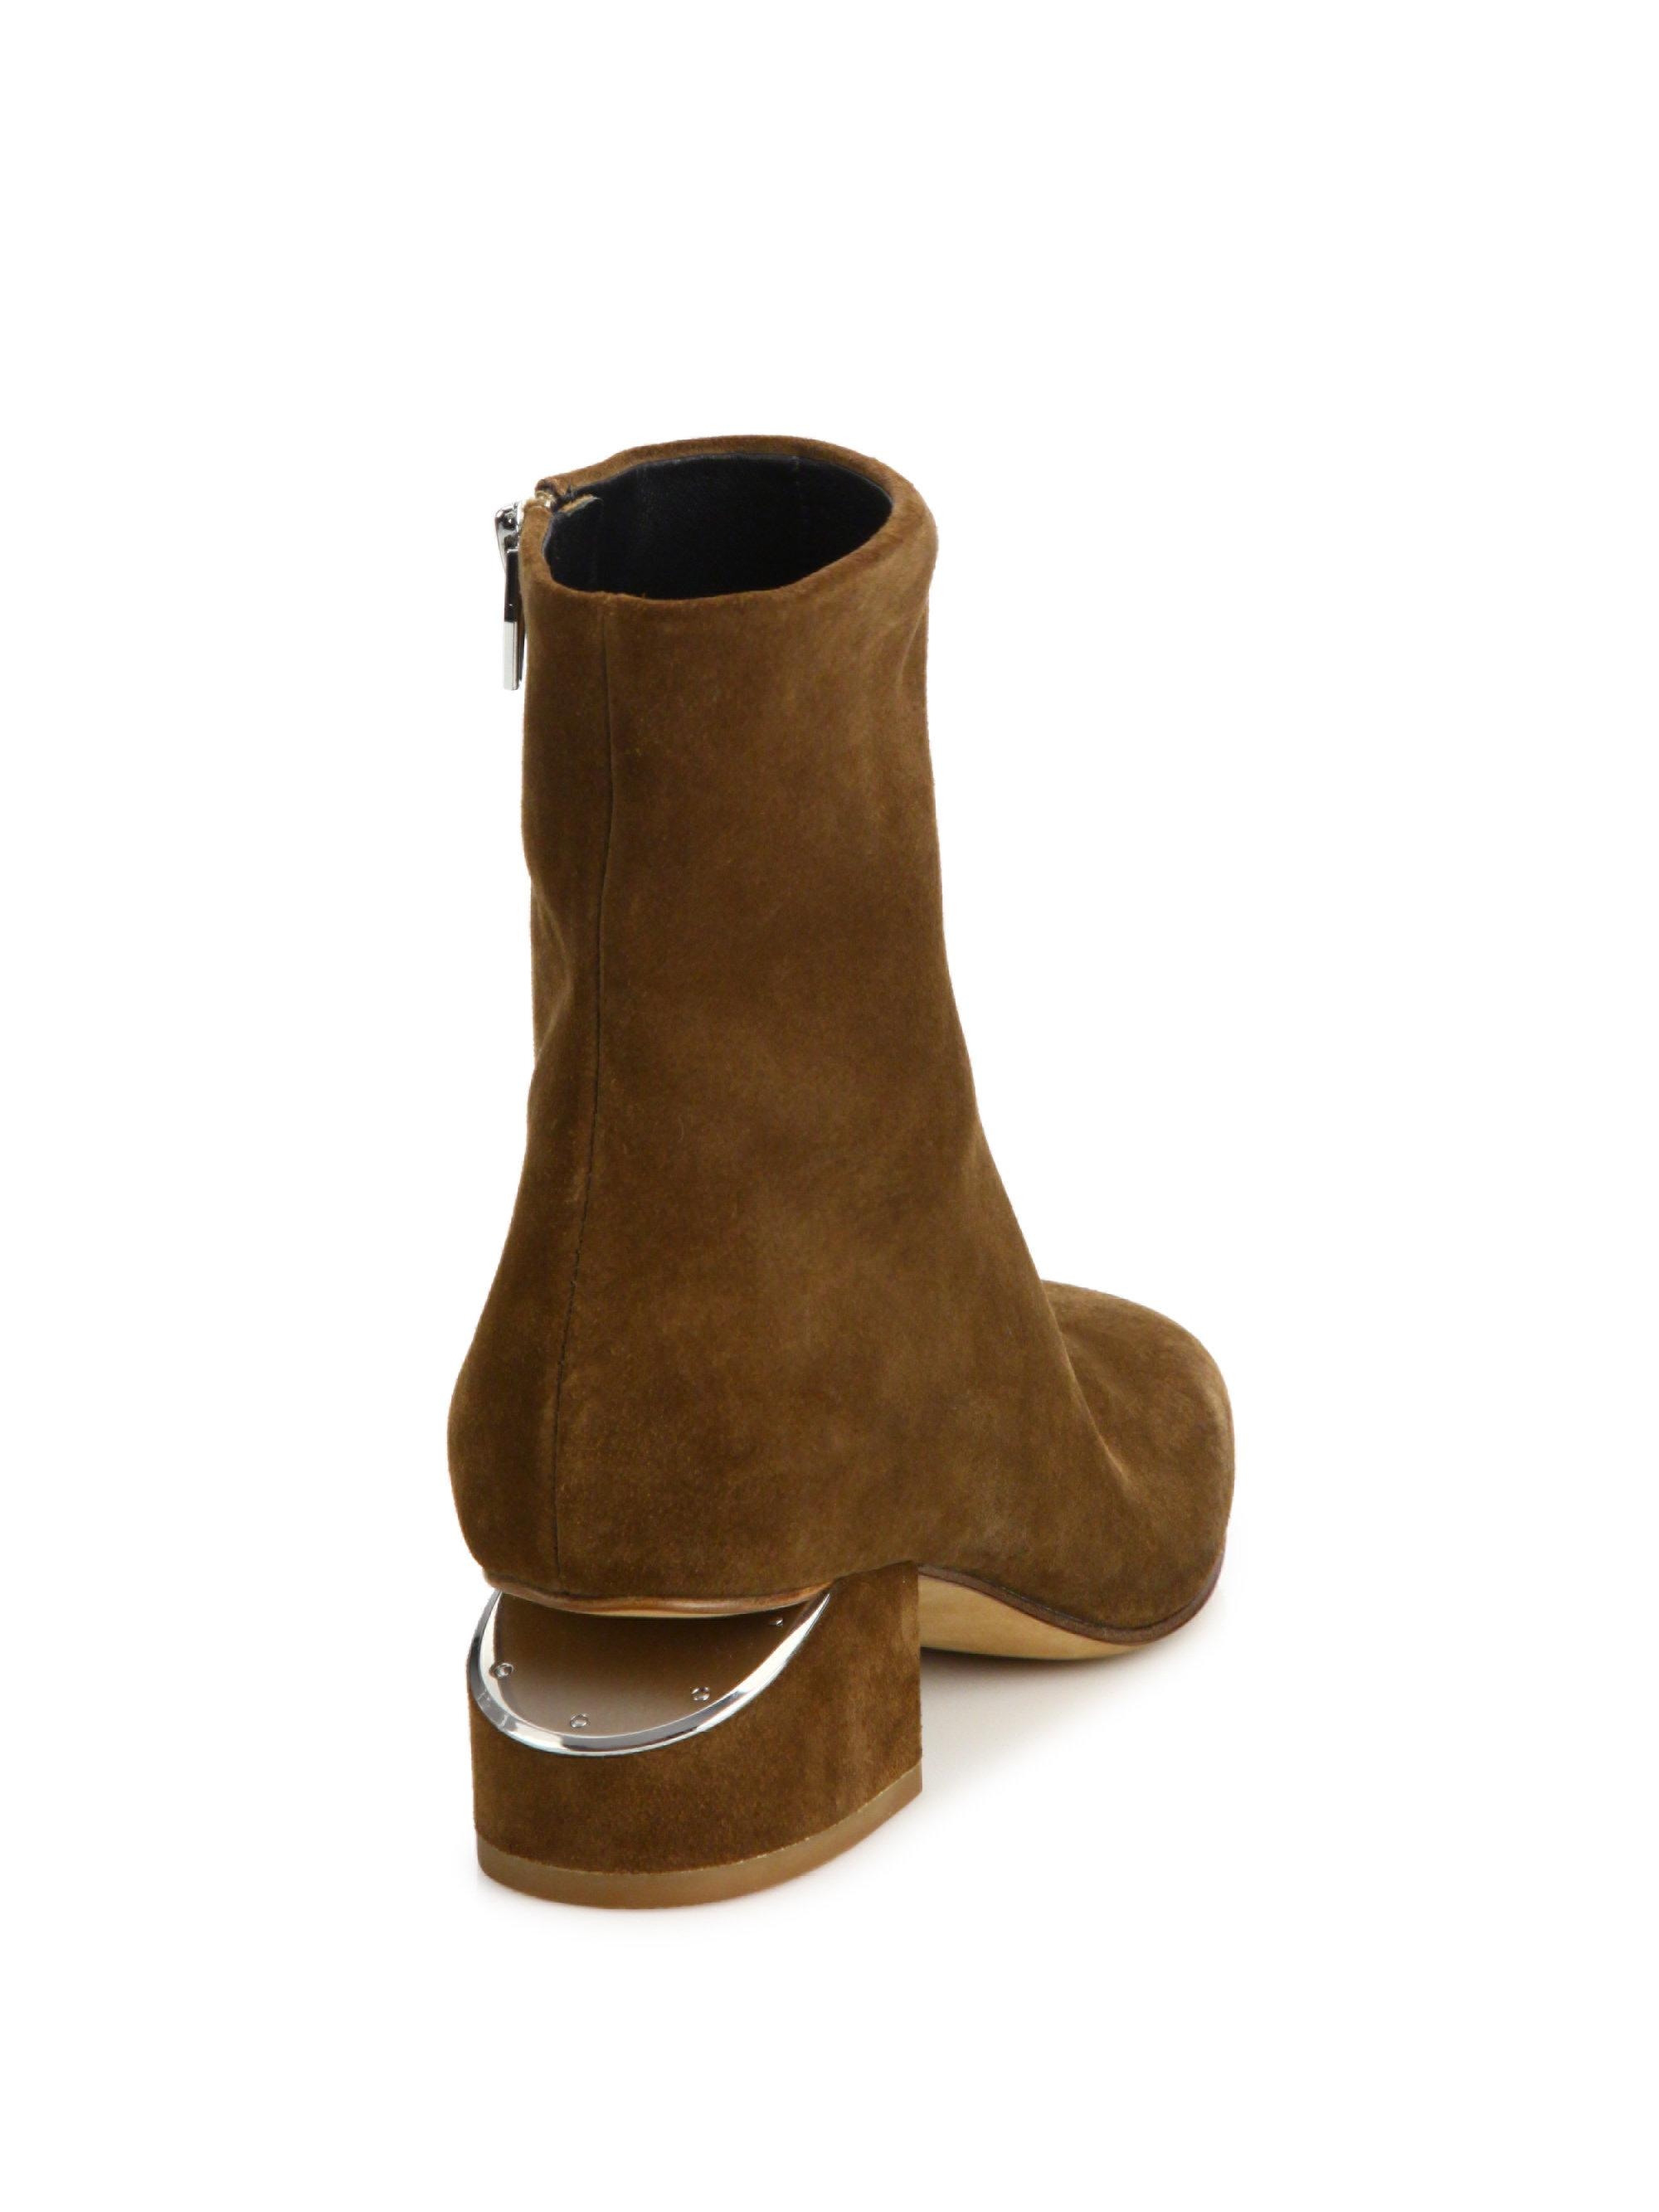 Tan Suede Kelly Boots Alexander Wang Cheap Sale Visit Free Shipping Visa Payment i6bD0Uqpg